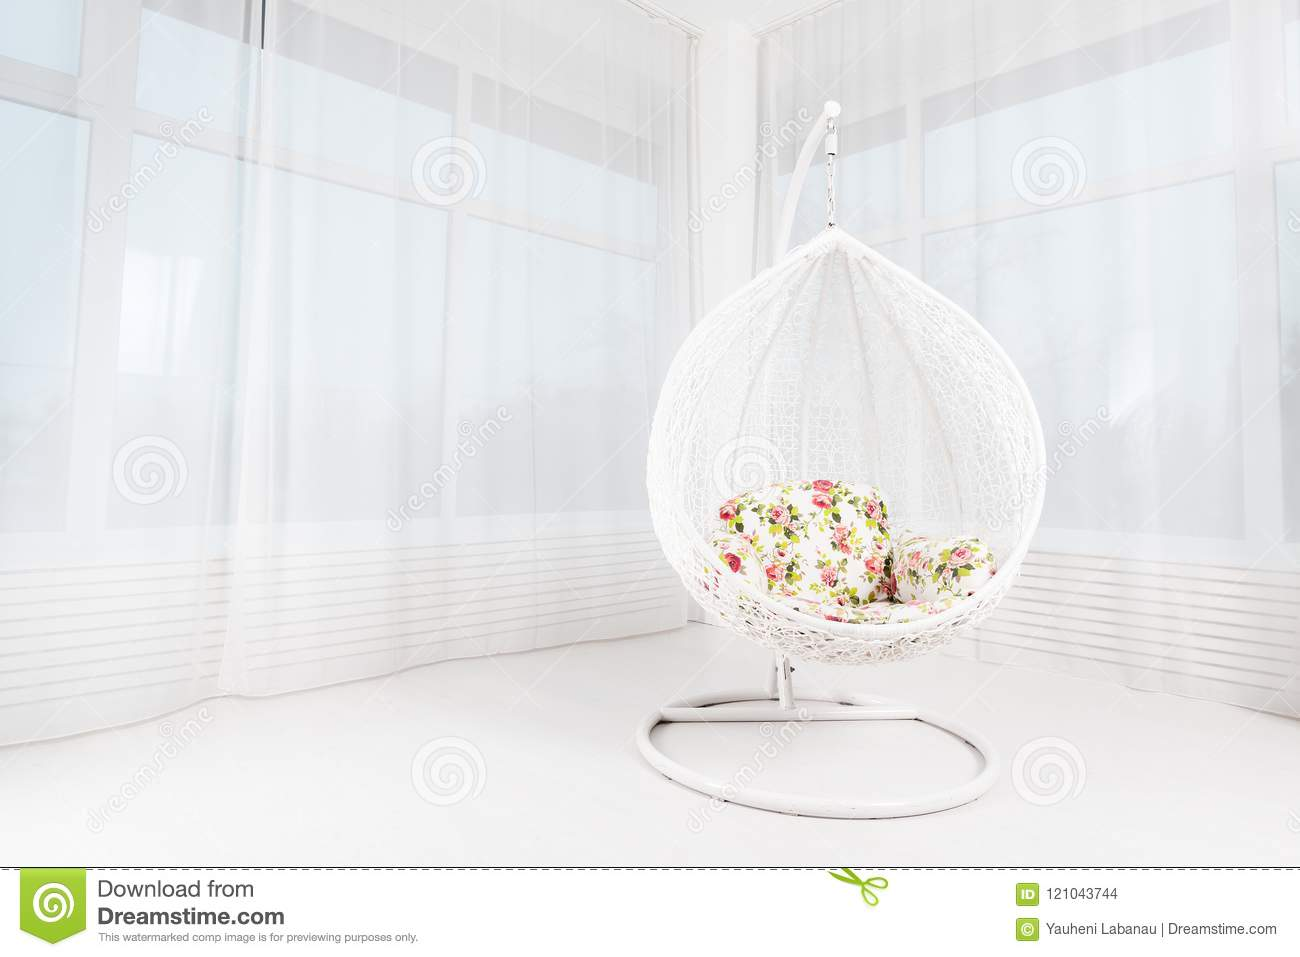 Image of: White Round Chair With Flowers In A Light Large Living Room Con Stock Photo Image Of Interior Celebration 121043744